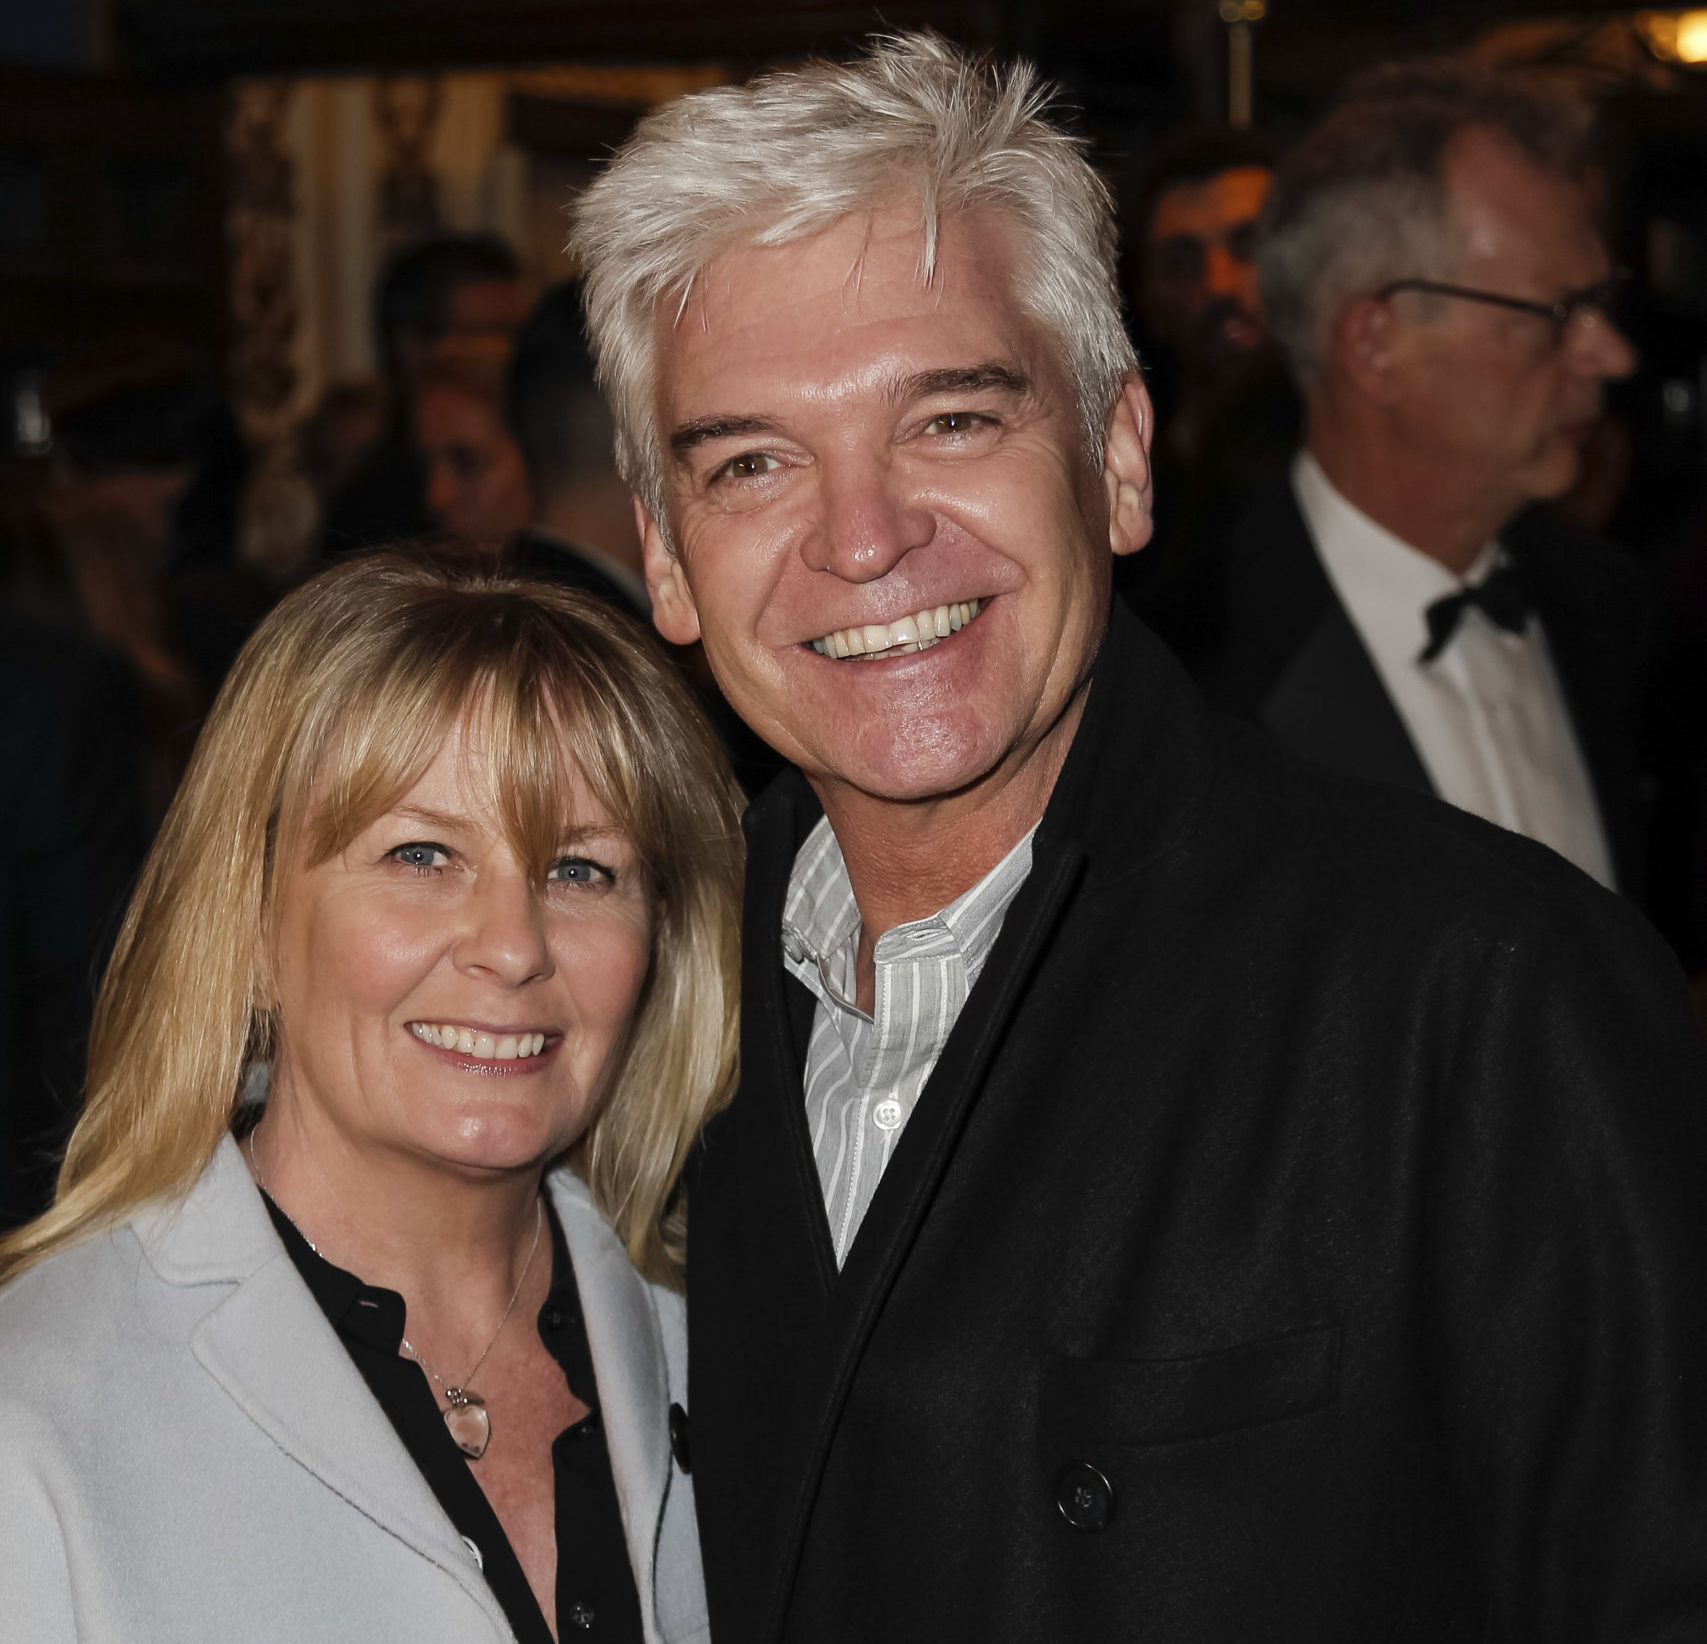 Philip Schofield and wife Stephanie Lowe